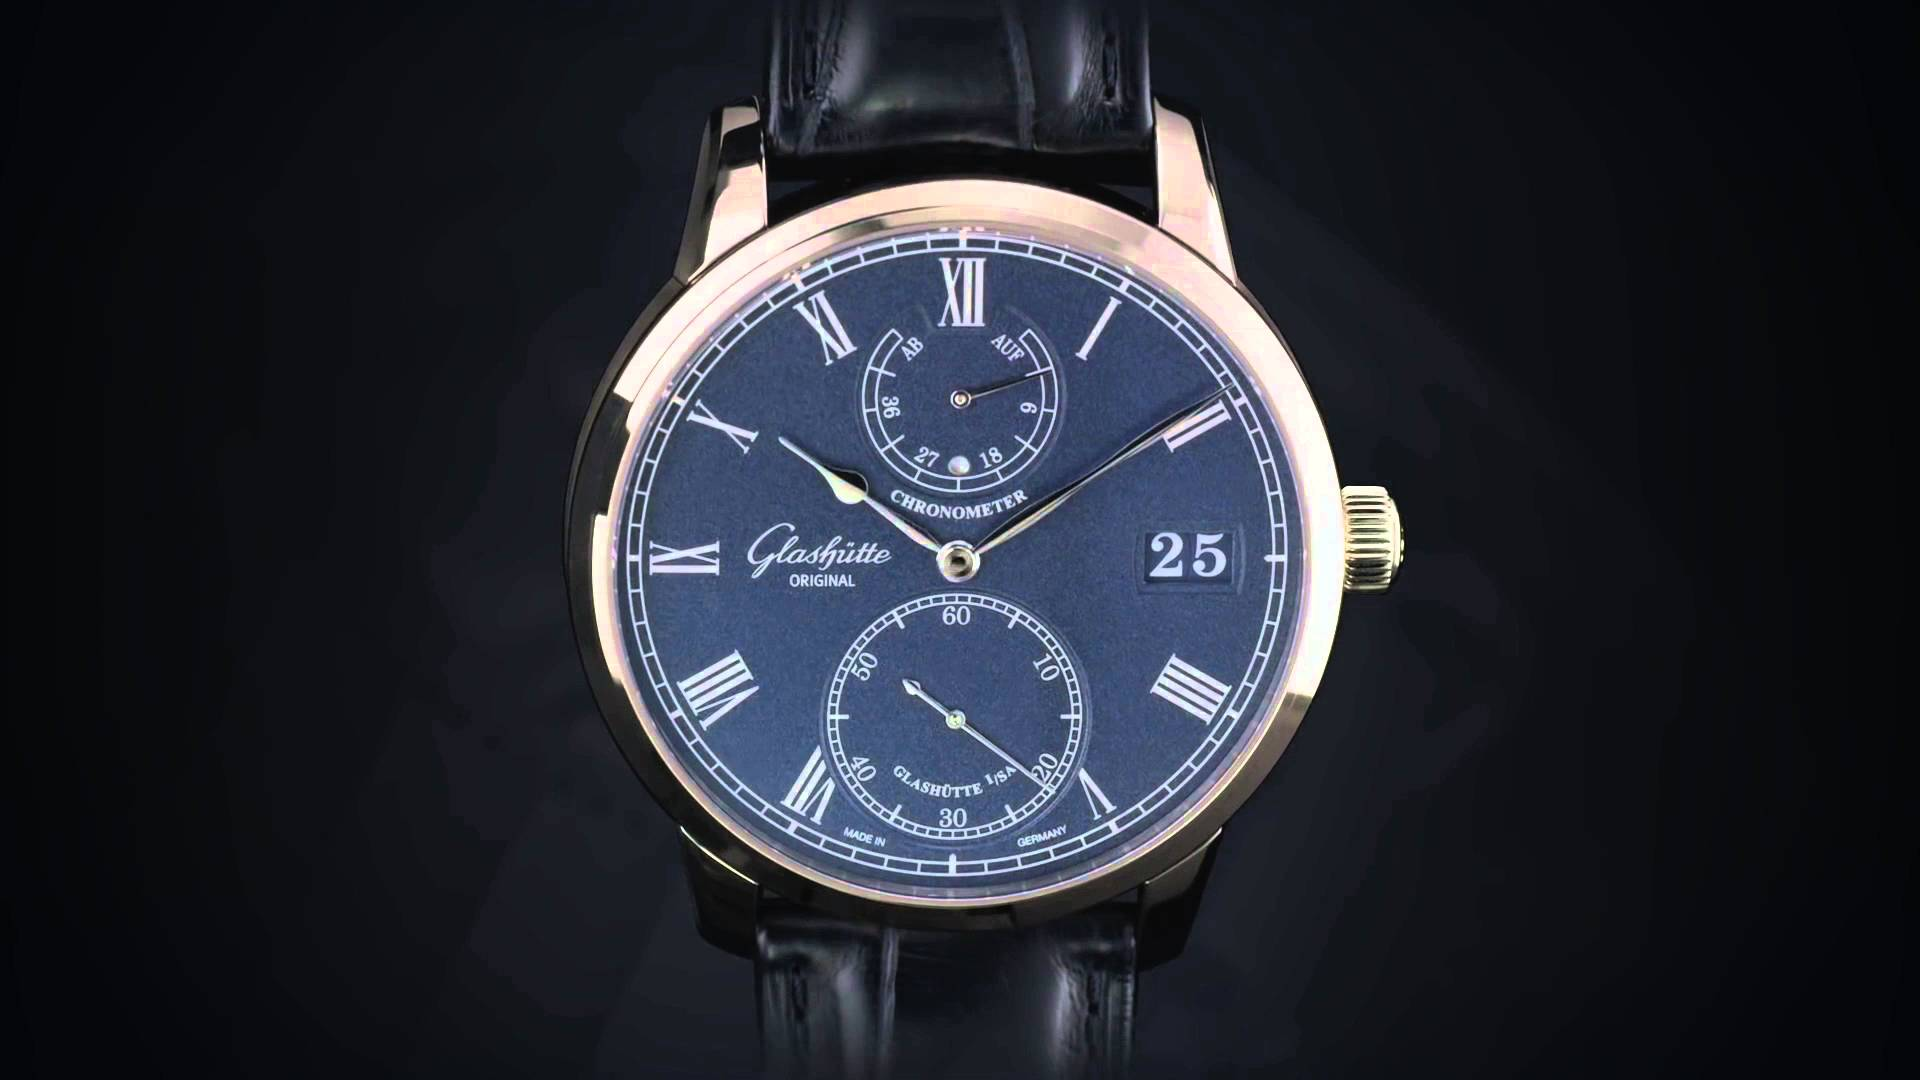 Closer Look At The Typical And Pretty Glashutte Original Senator Chronometer Replica Watch